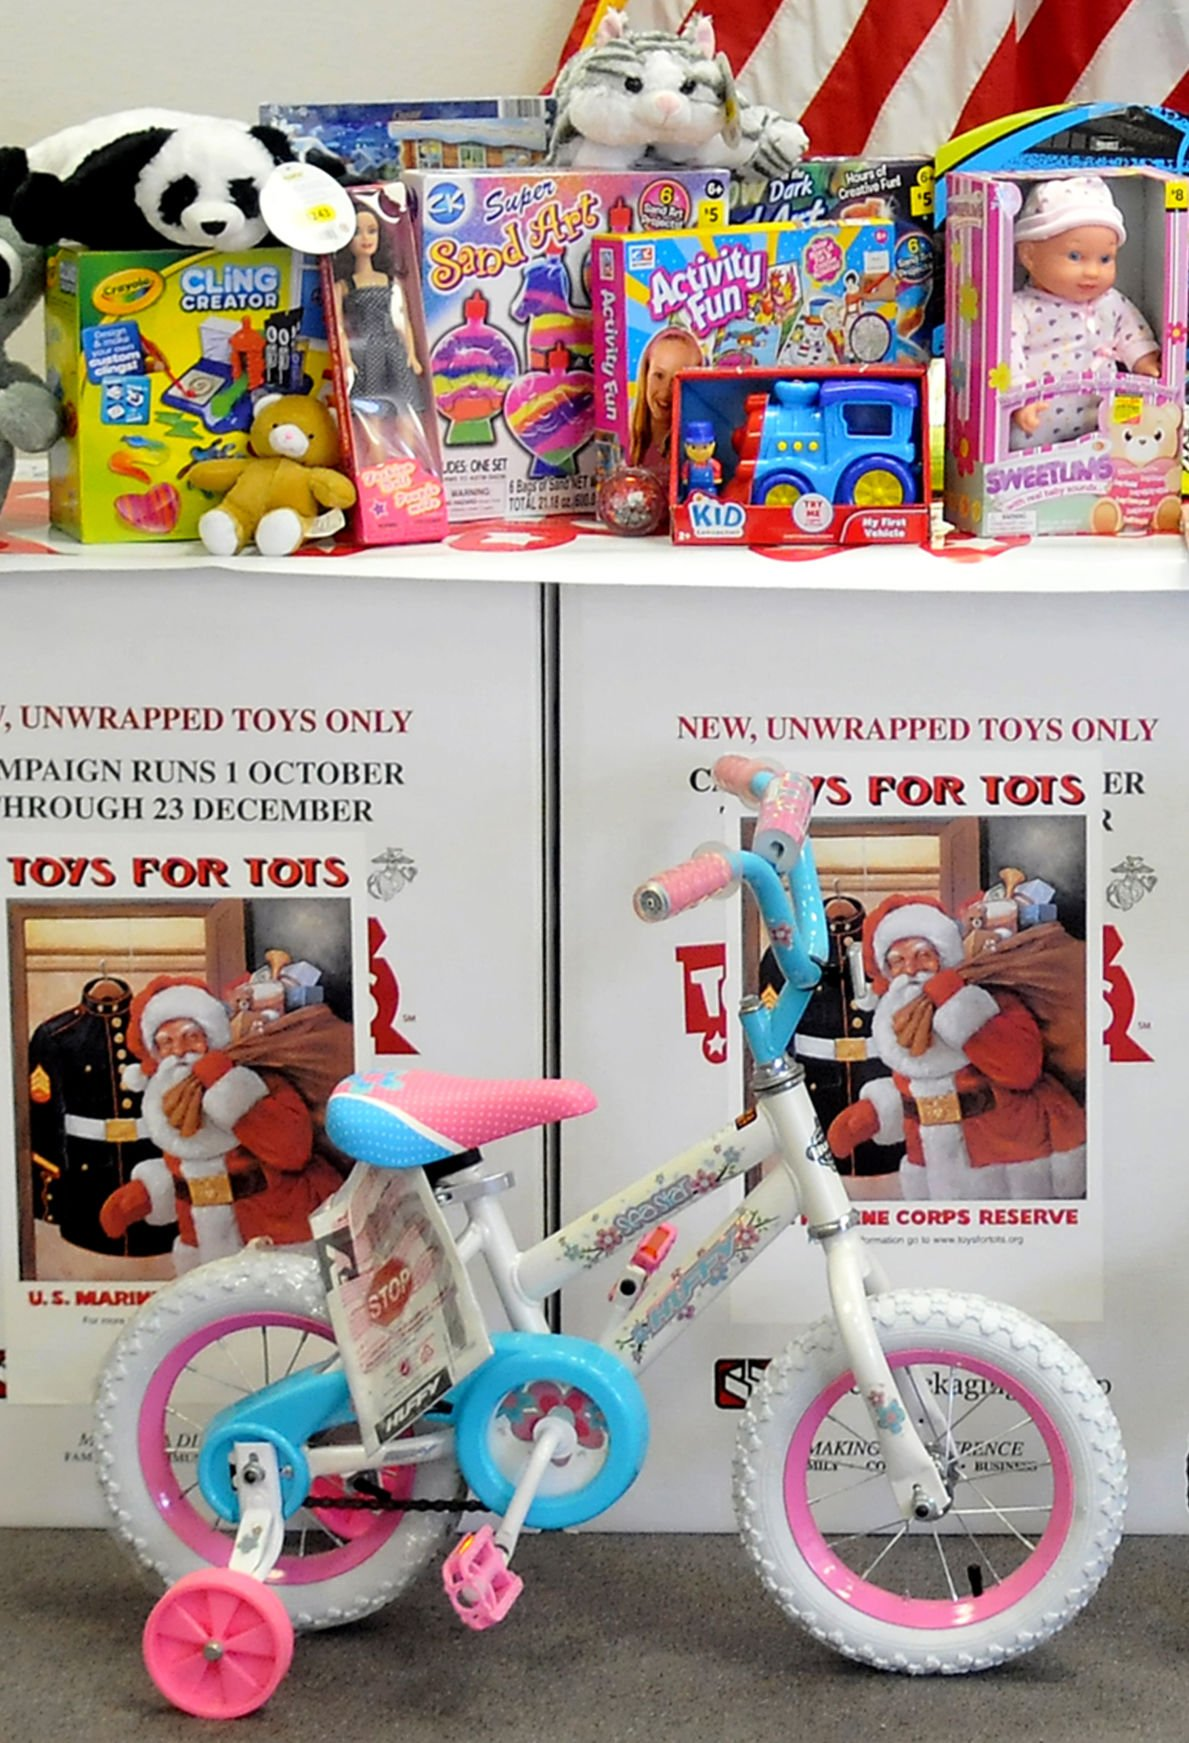 2 Toys For Tots : Local company offering donations to toys for tots as part